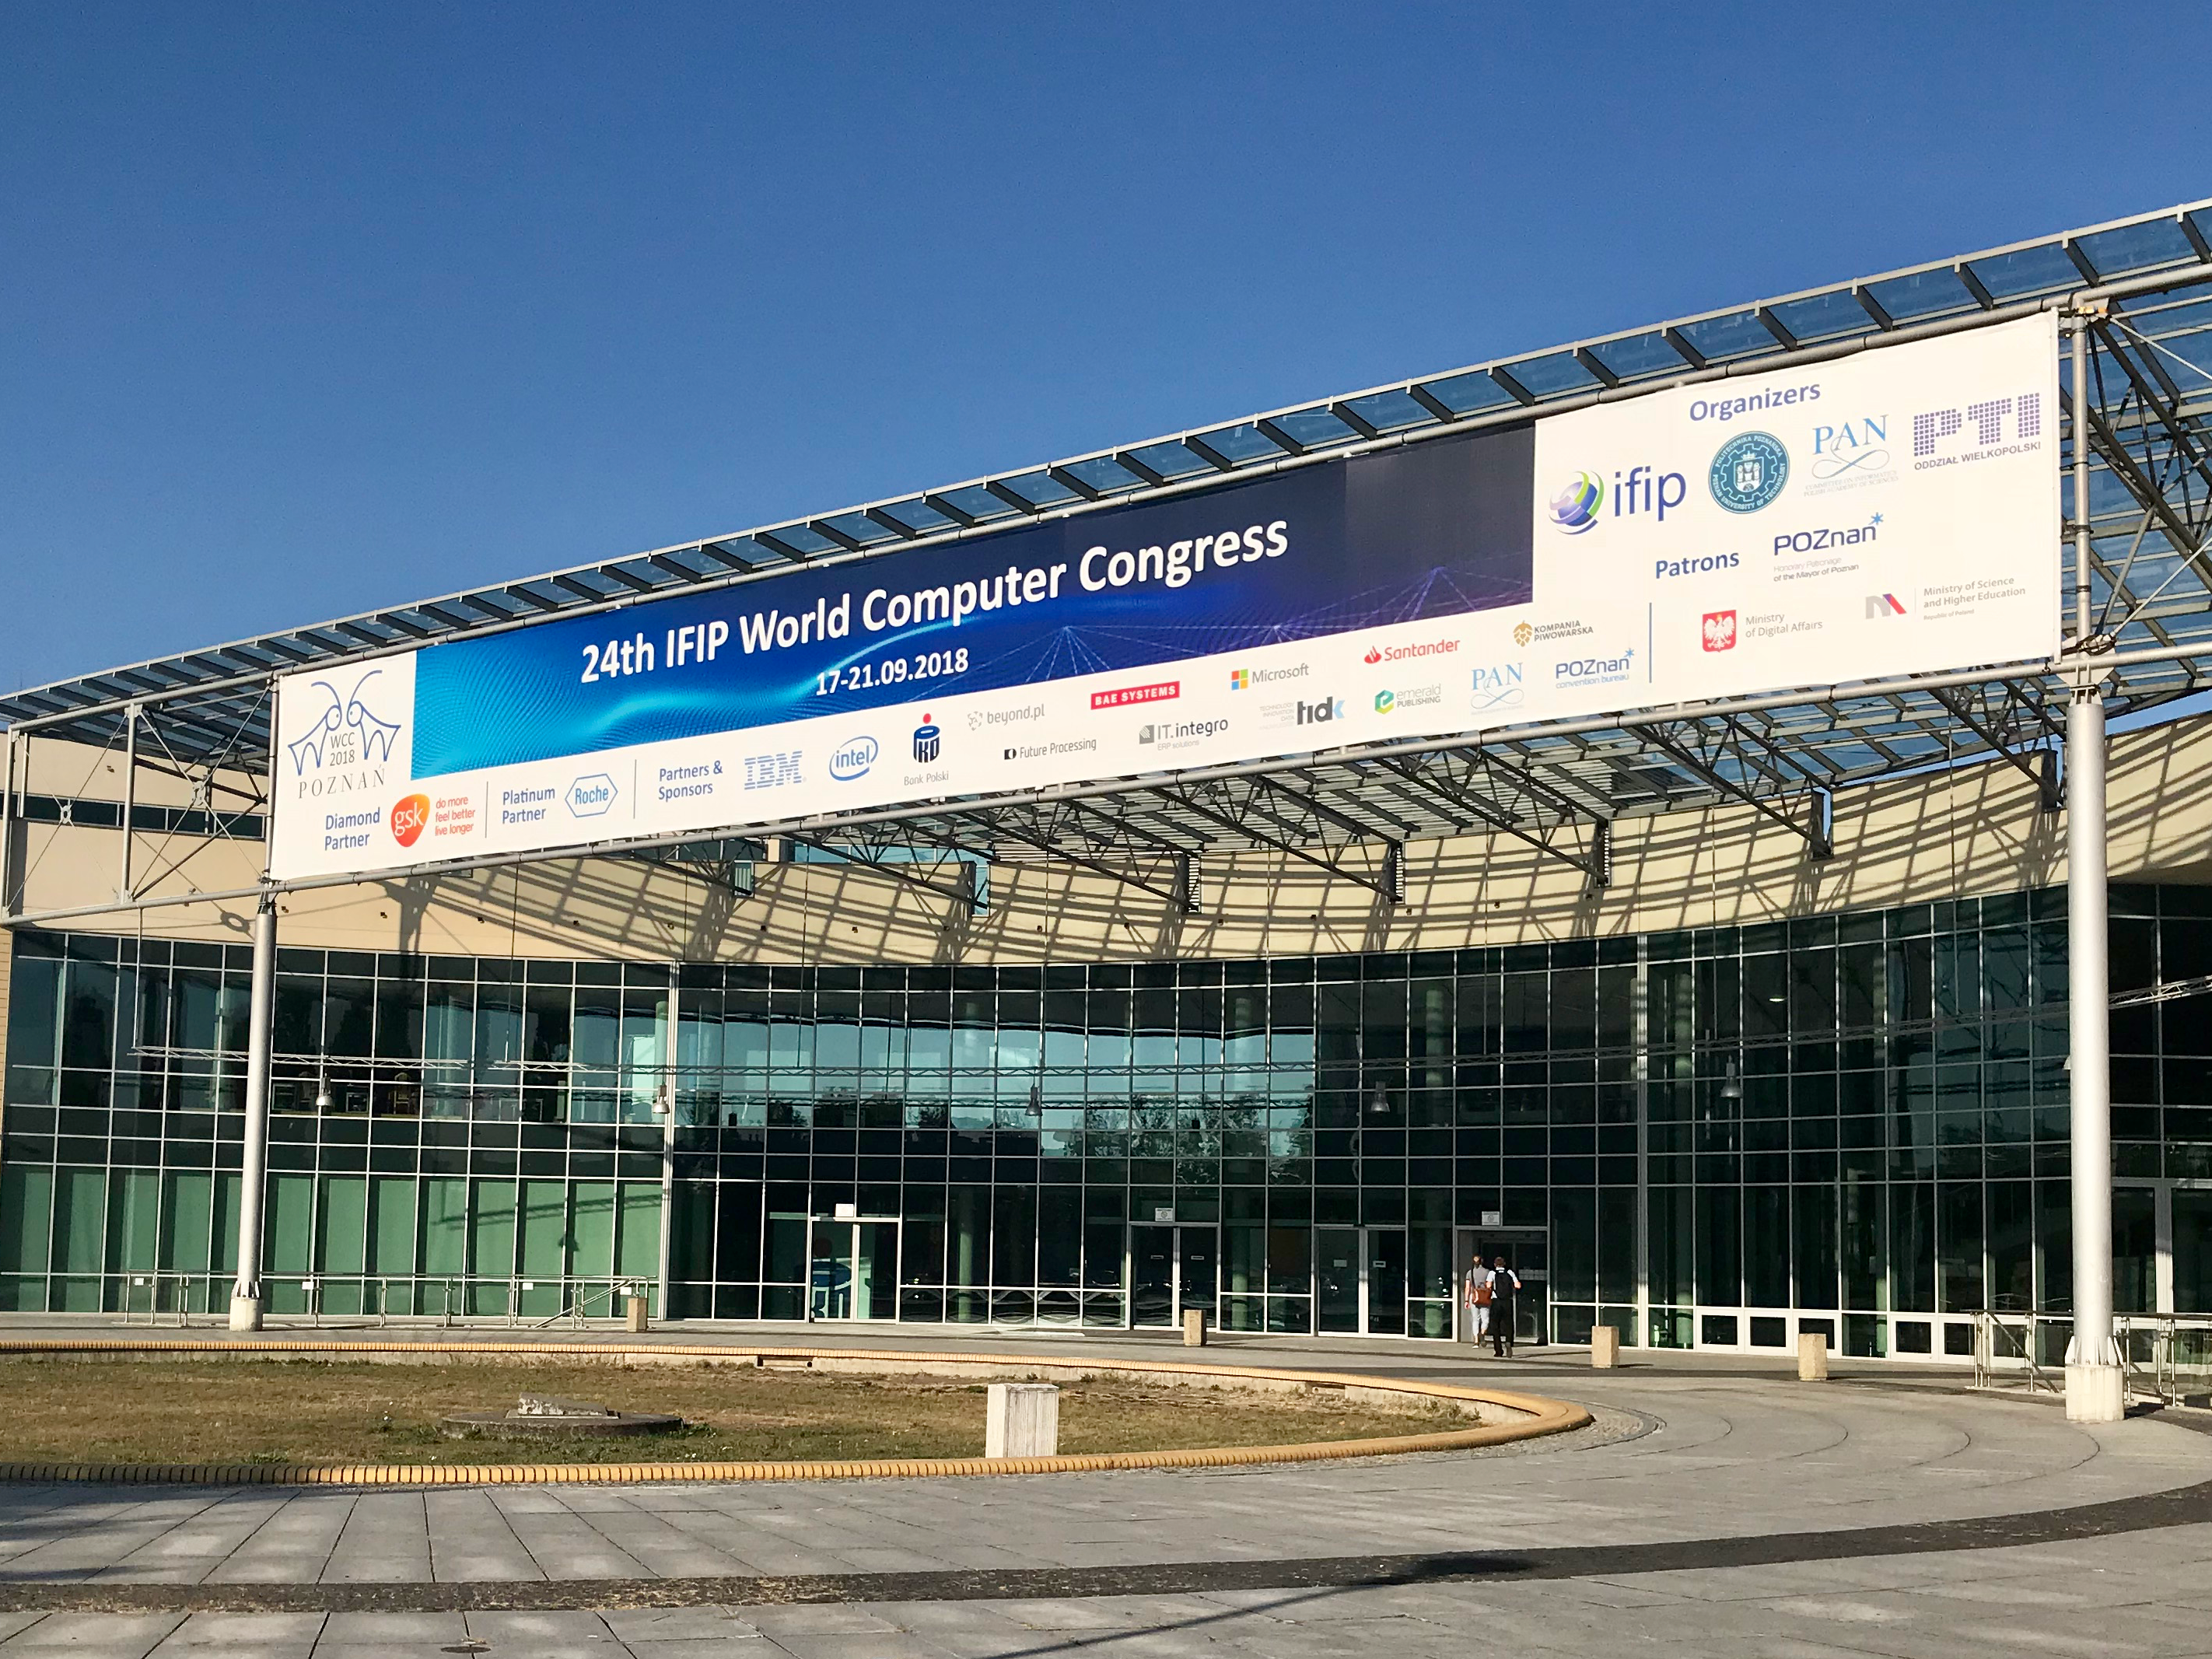 The 24th IFIP World Congress was hosted by the Poznań University of Technology.